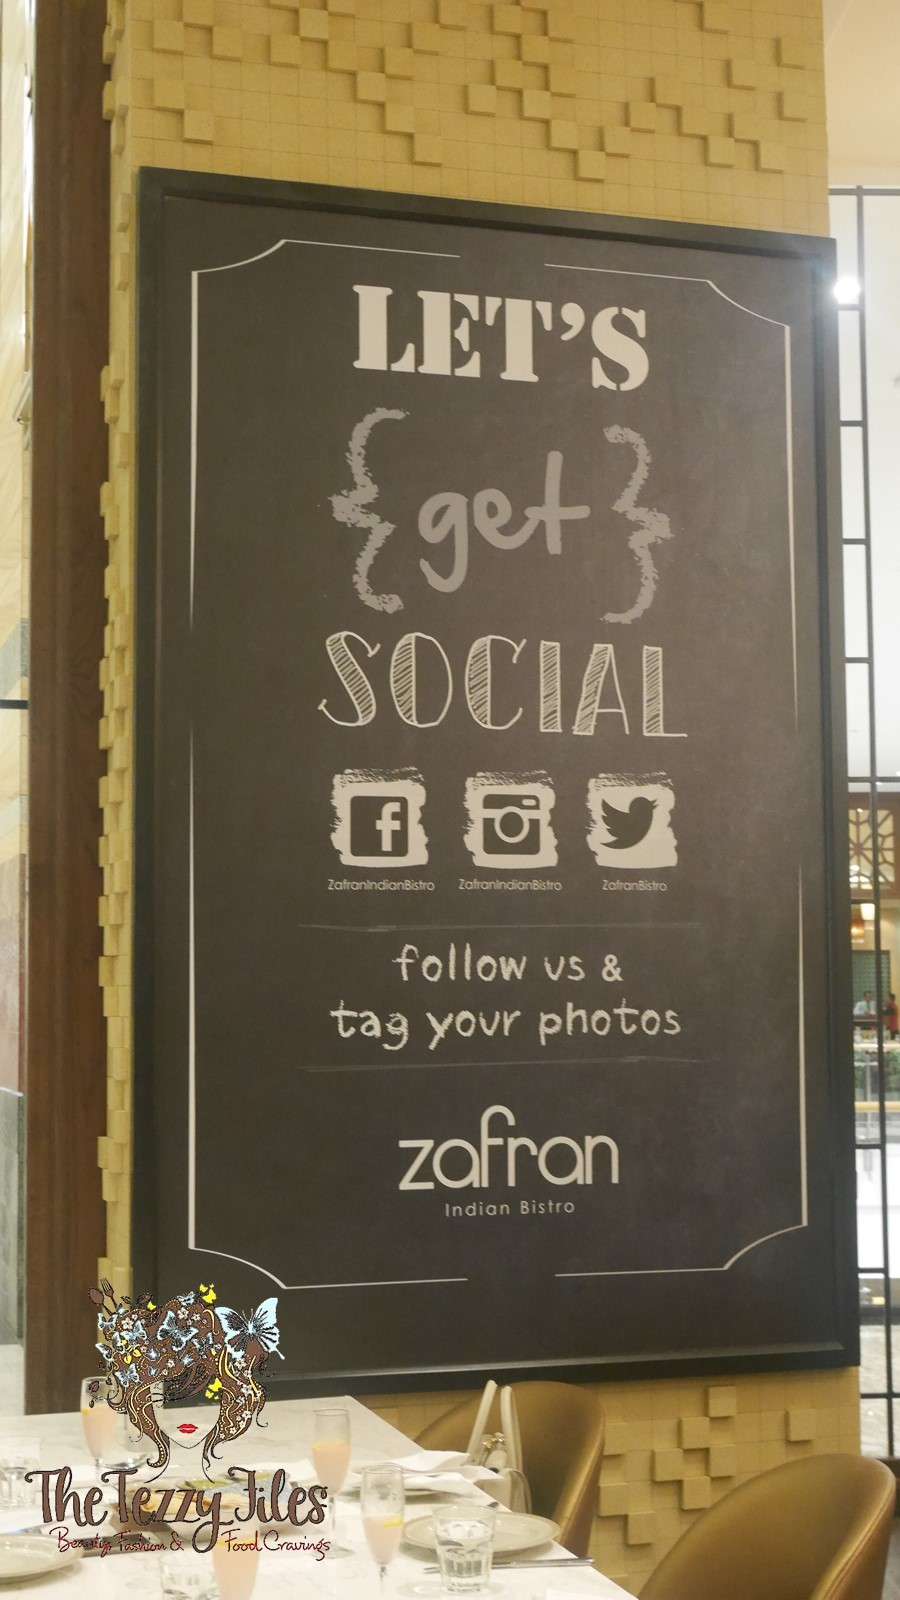 zafran-indian-bistro-mirdiff-city-centre-dubai-food-review-by-the-tezzy-files-dubai-food-blogger-9